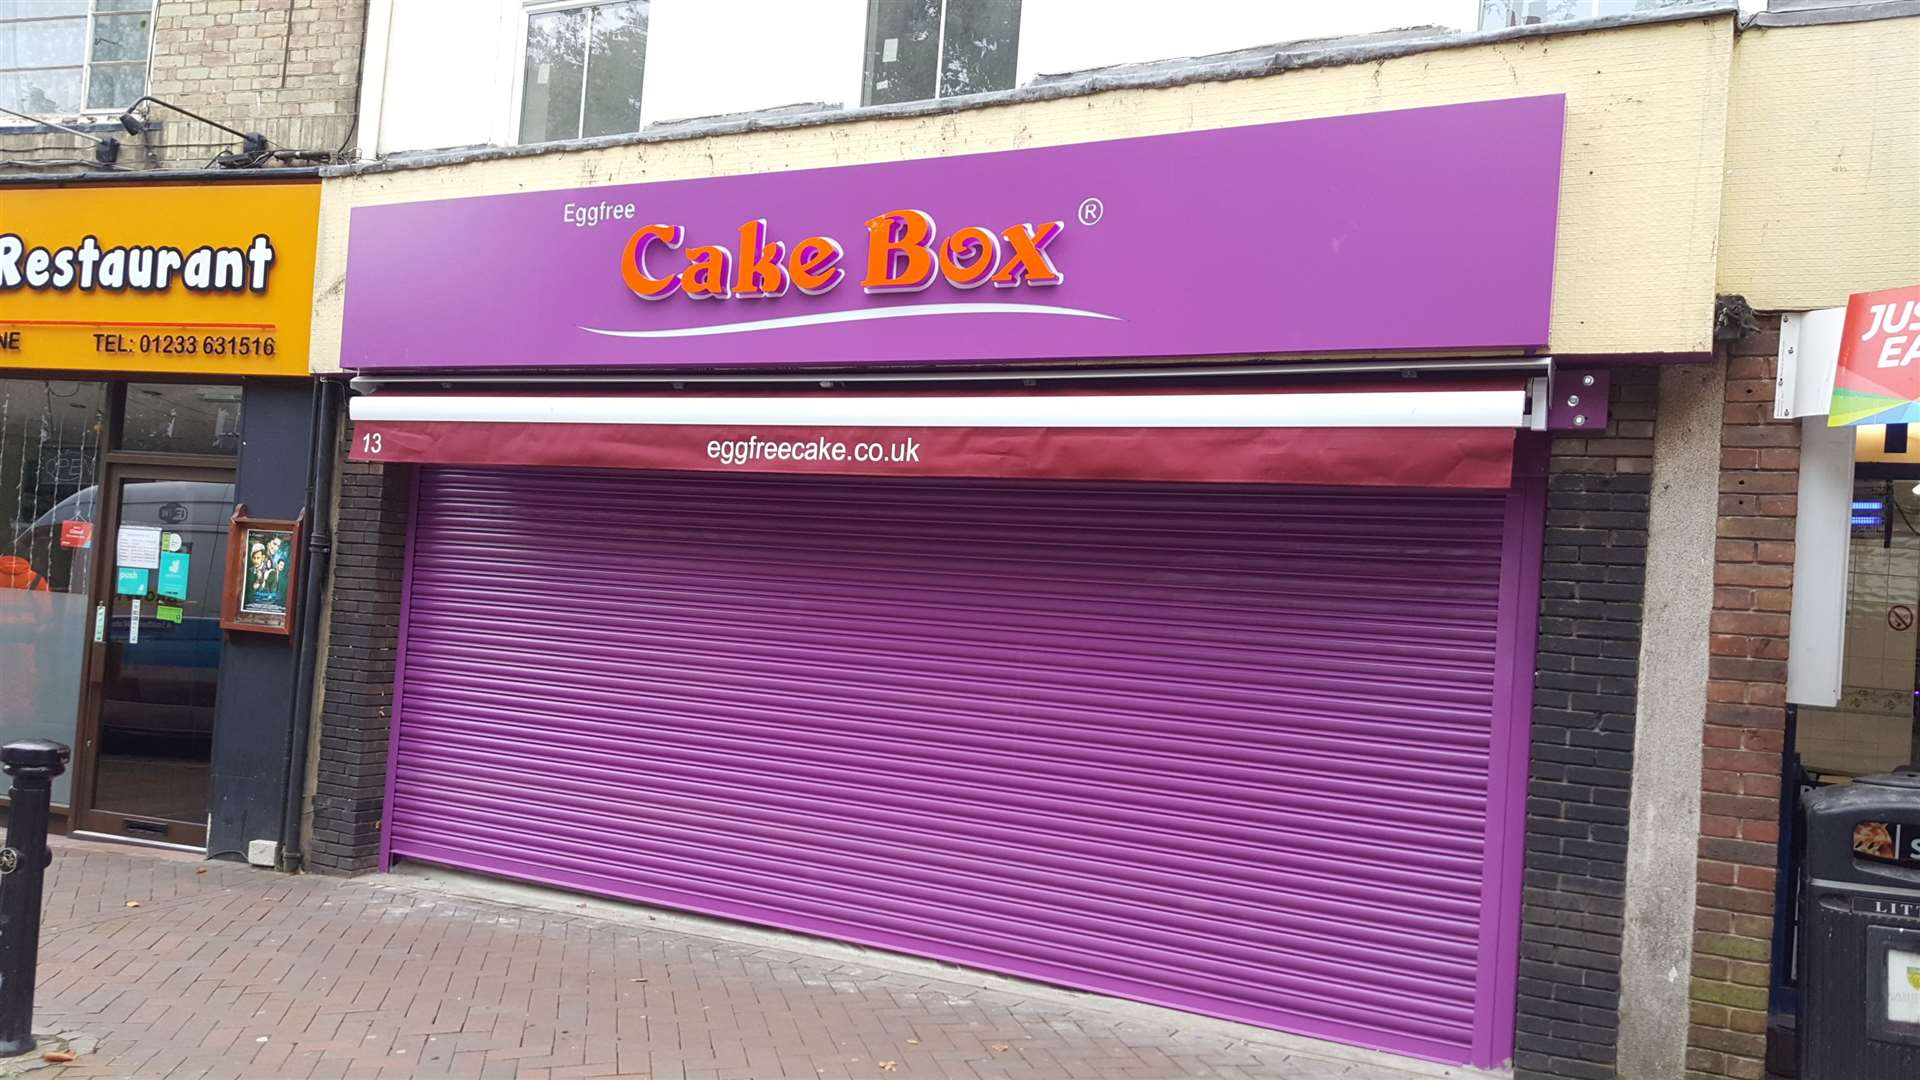 Eggfree Cake Box in Ashford town centre